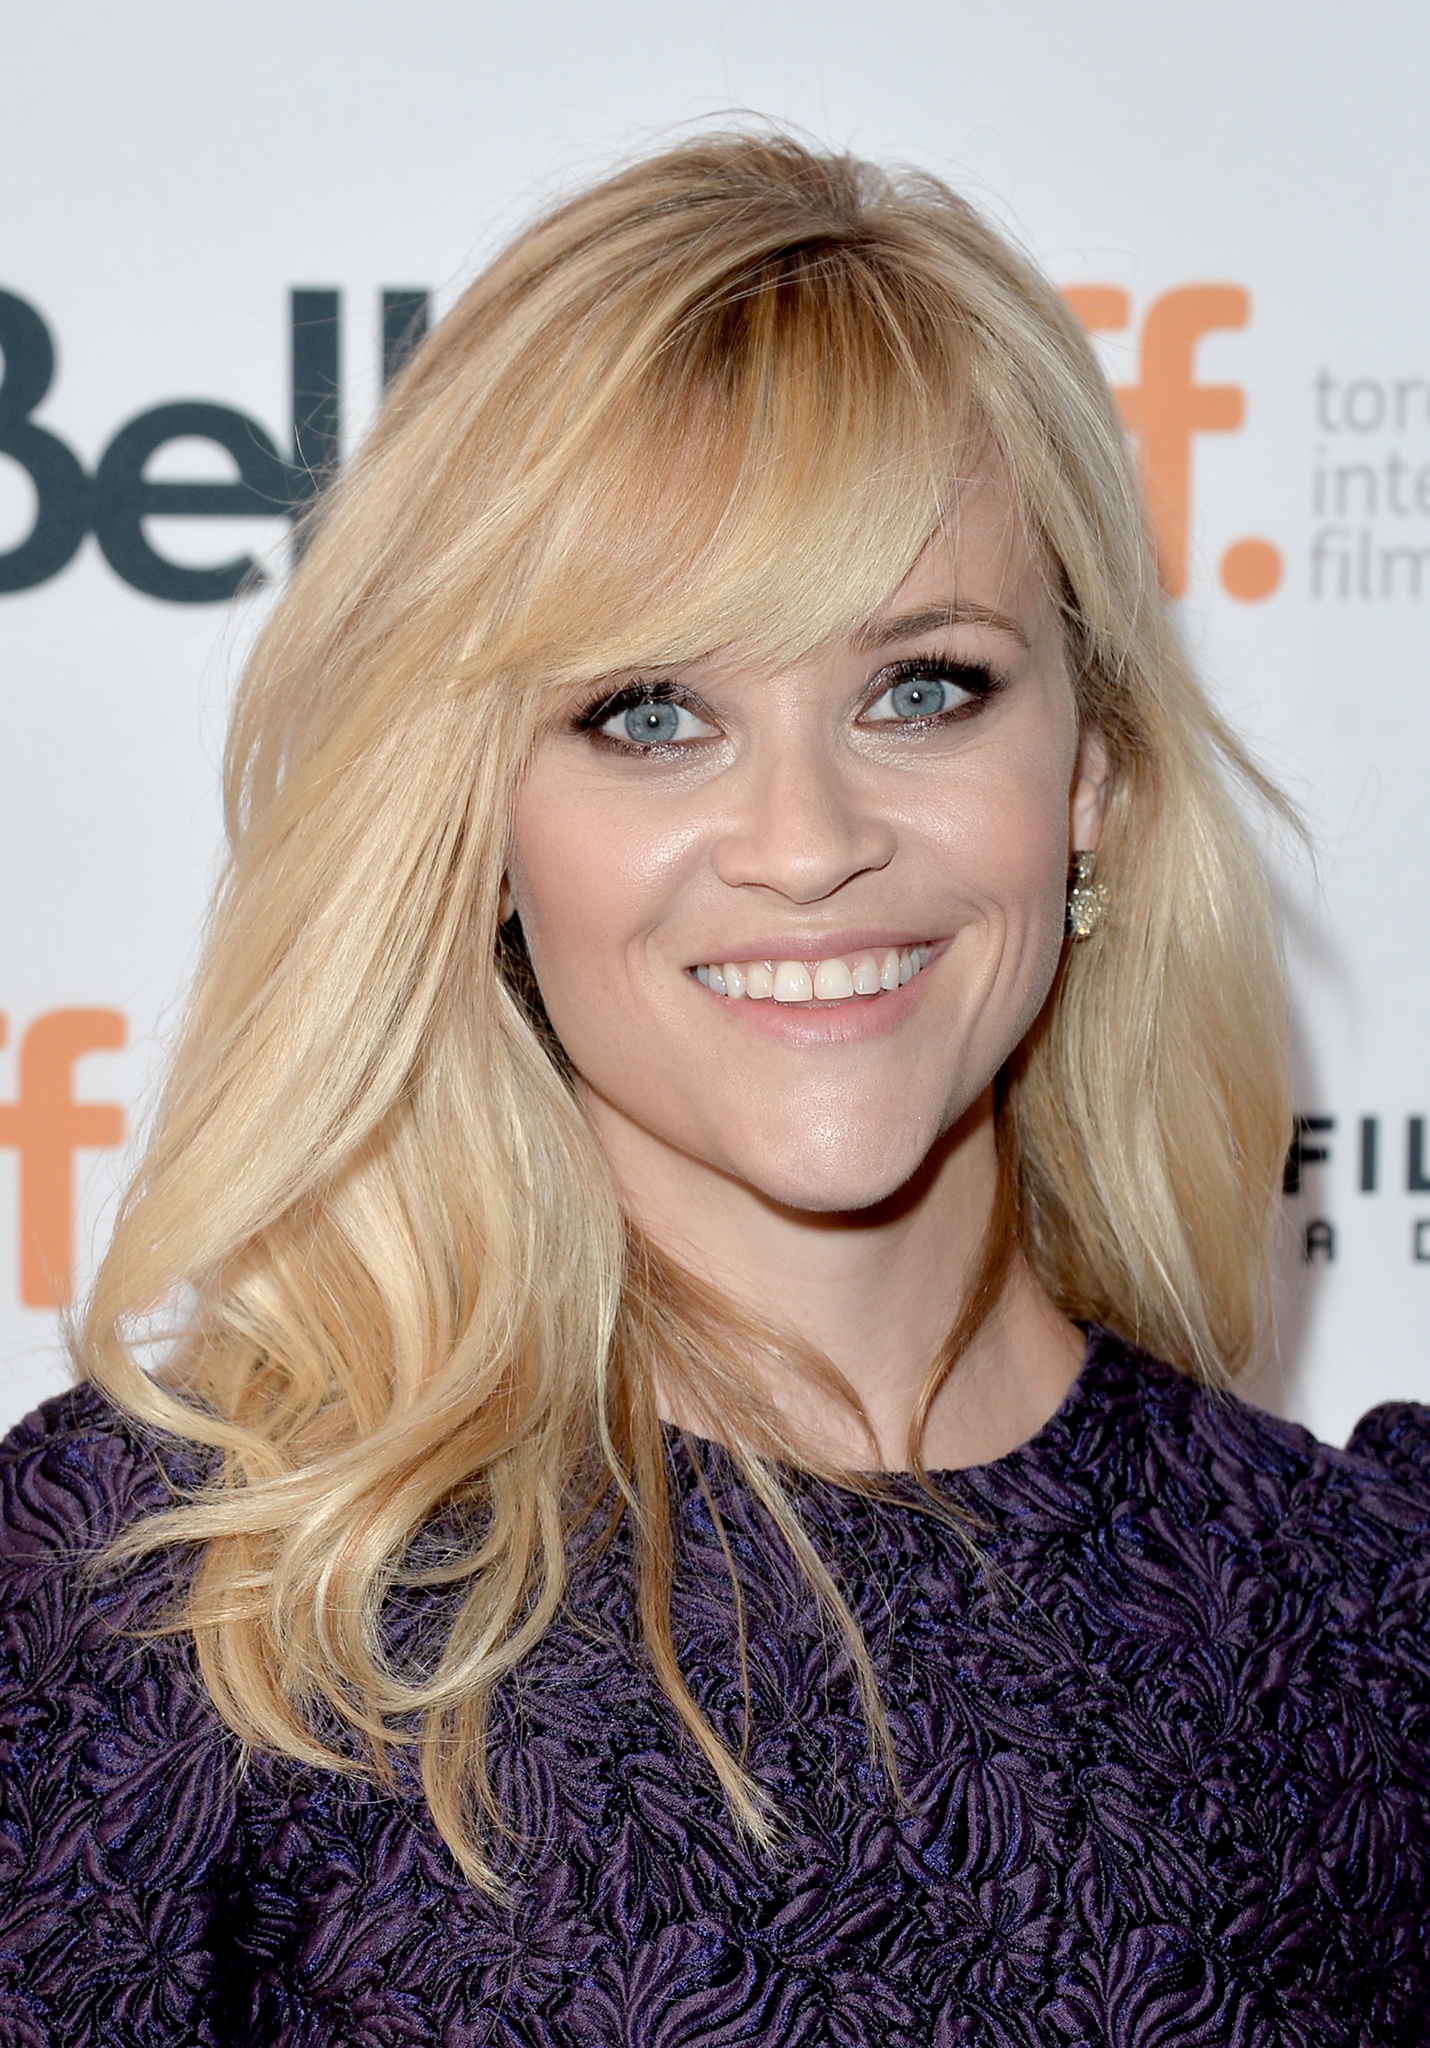 Reese Witherspoon at an event for The Good Lie (2014)